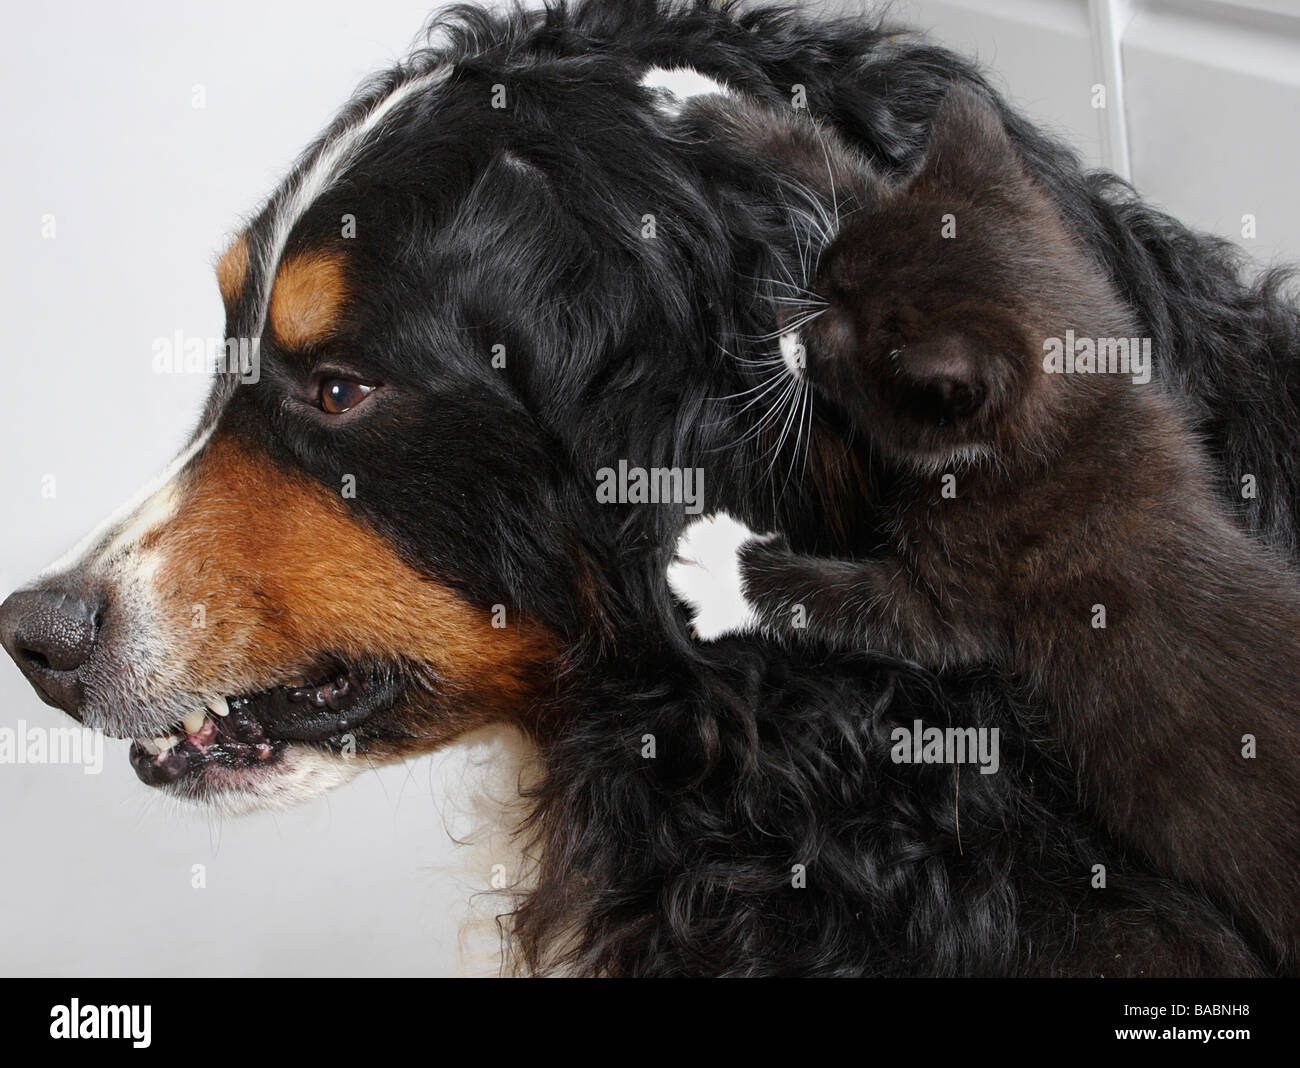 bernese mountain dog snarling at little kitten jumping on his head Stock Photo